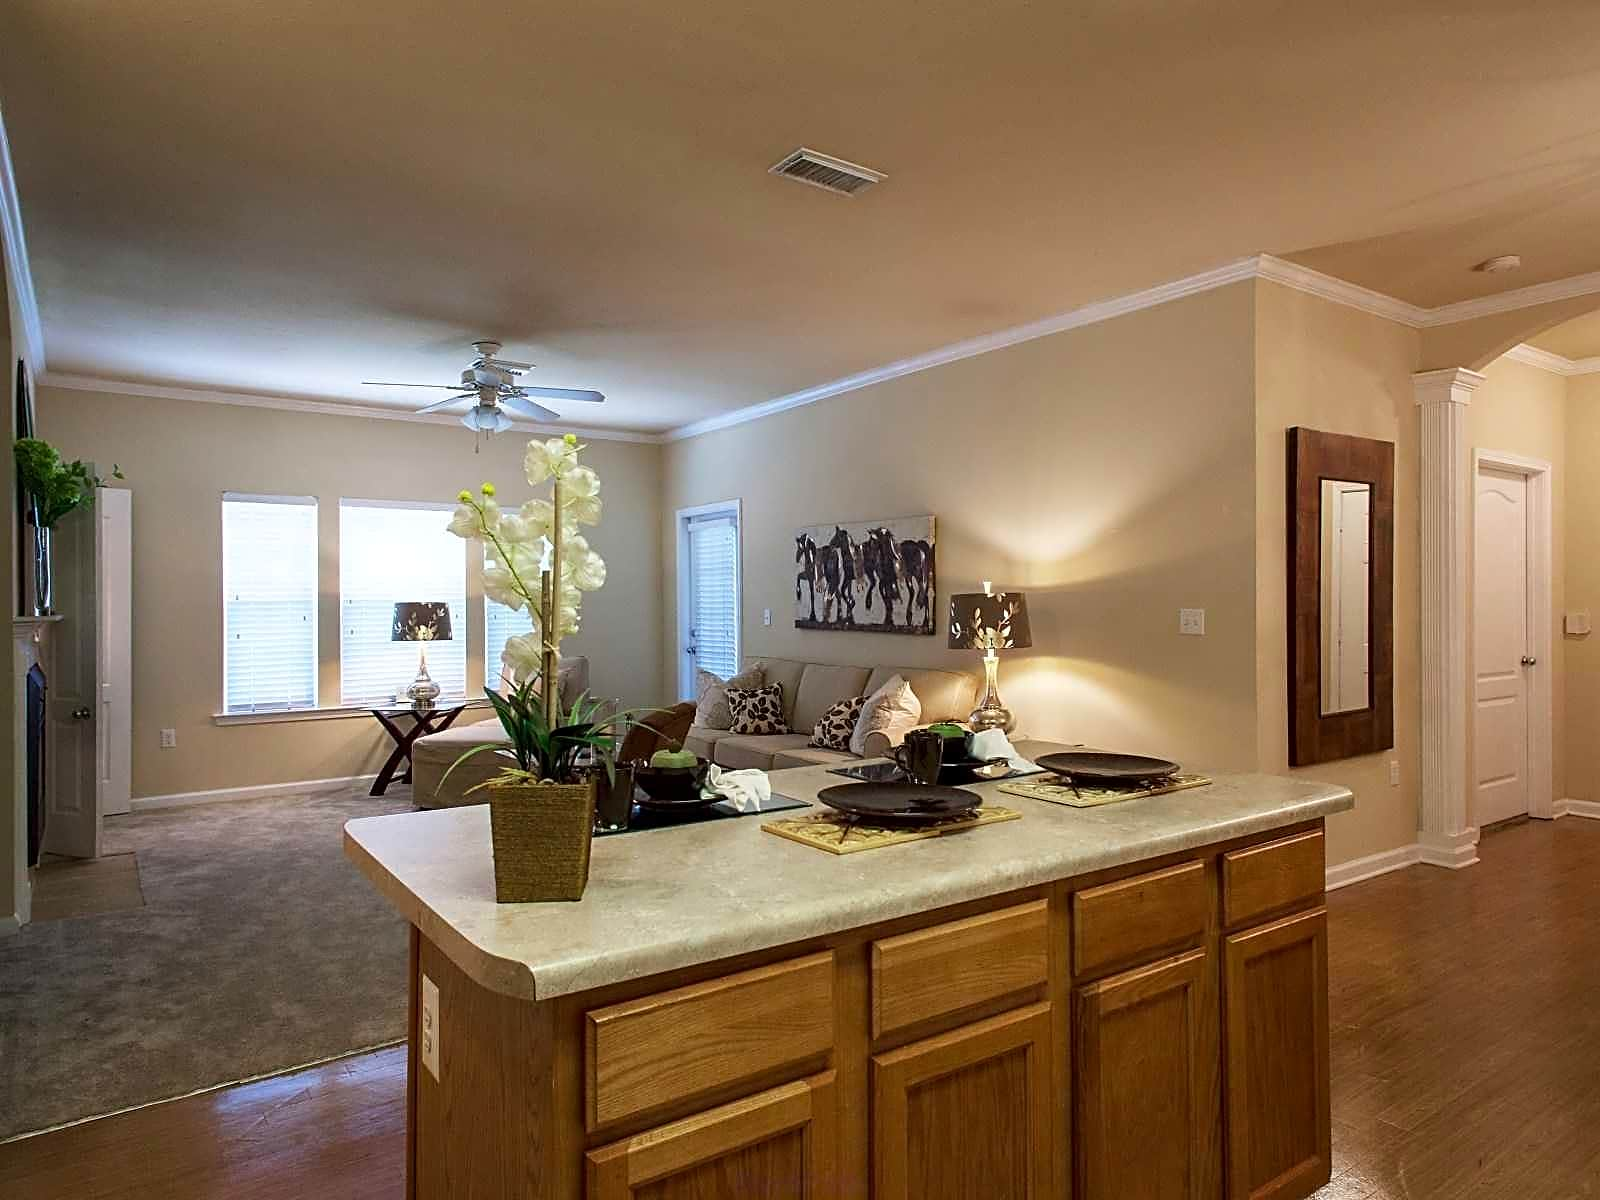 Apartments Near Day Spa Career College Arbor Place for Day Spa Career College Students in Ocean Springs, MS